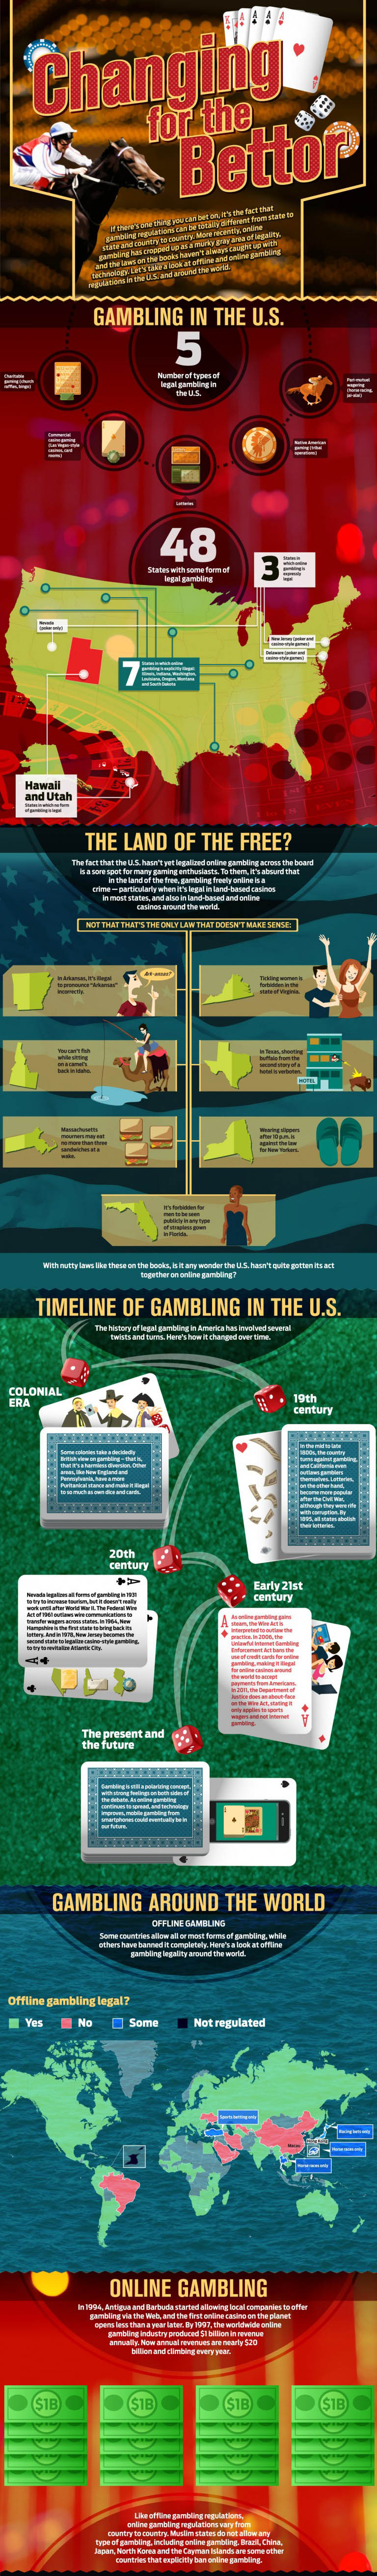 Infografic: Gambling in the United States and around the World